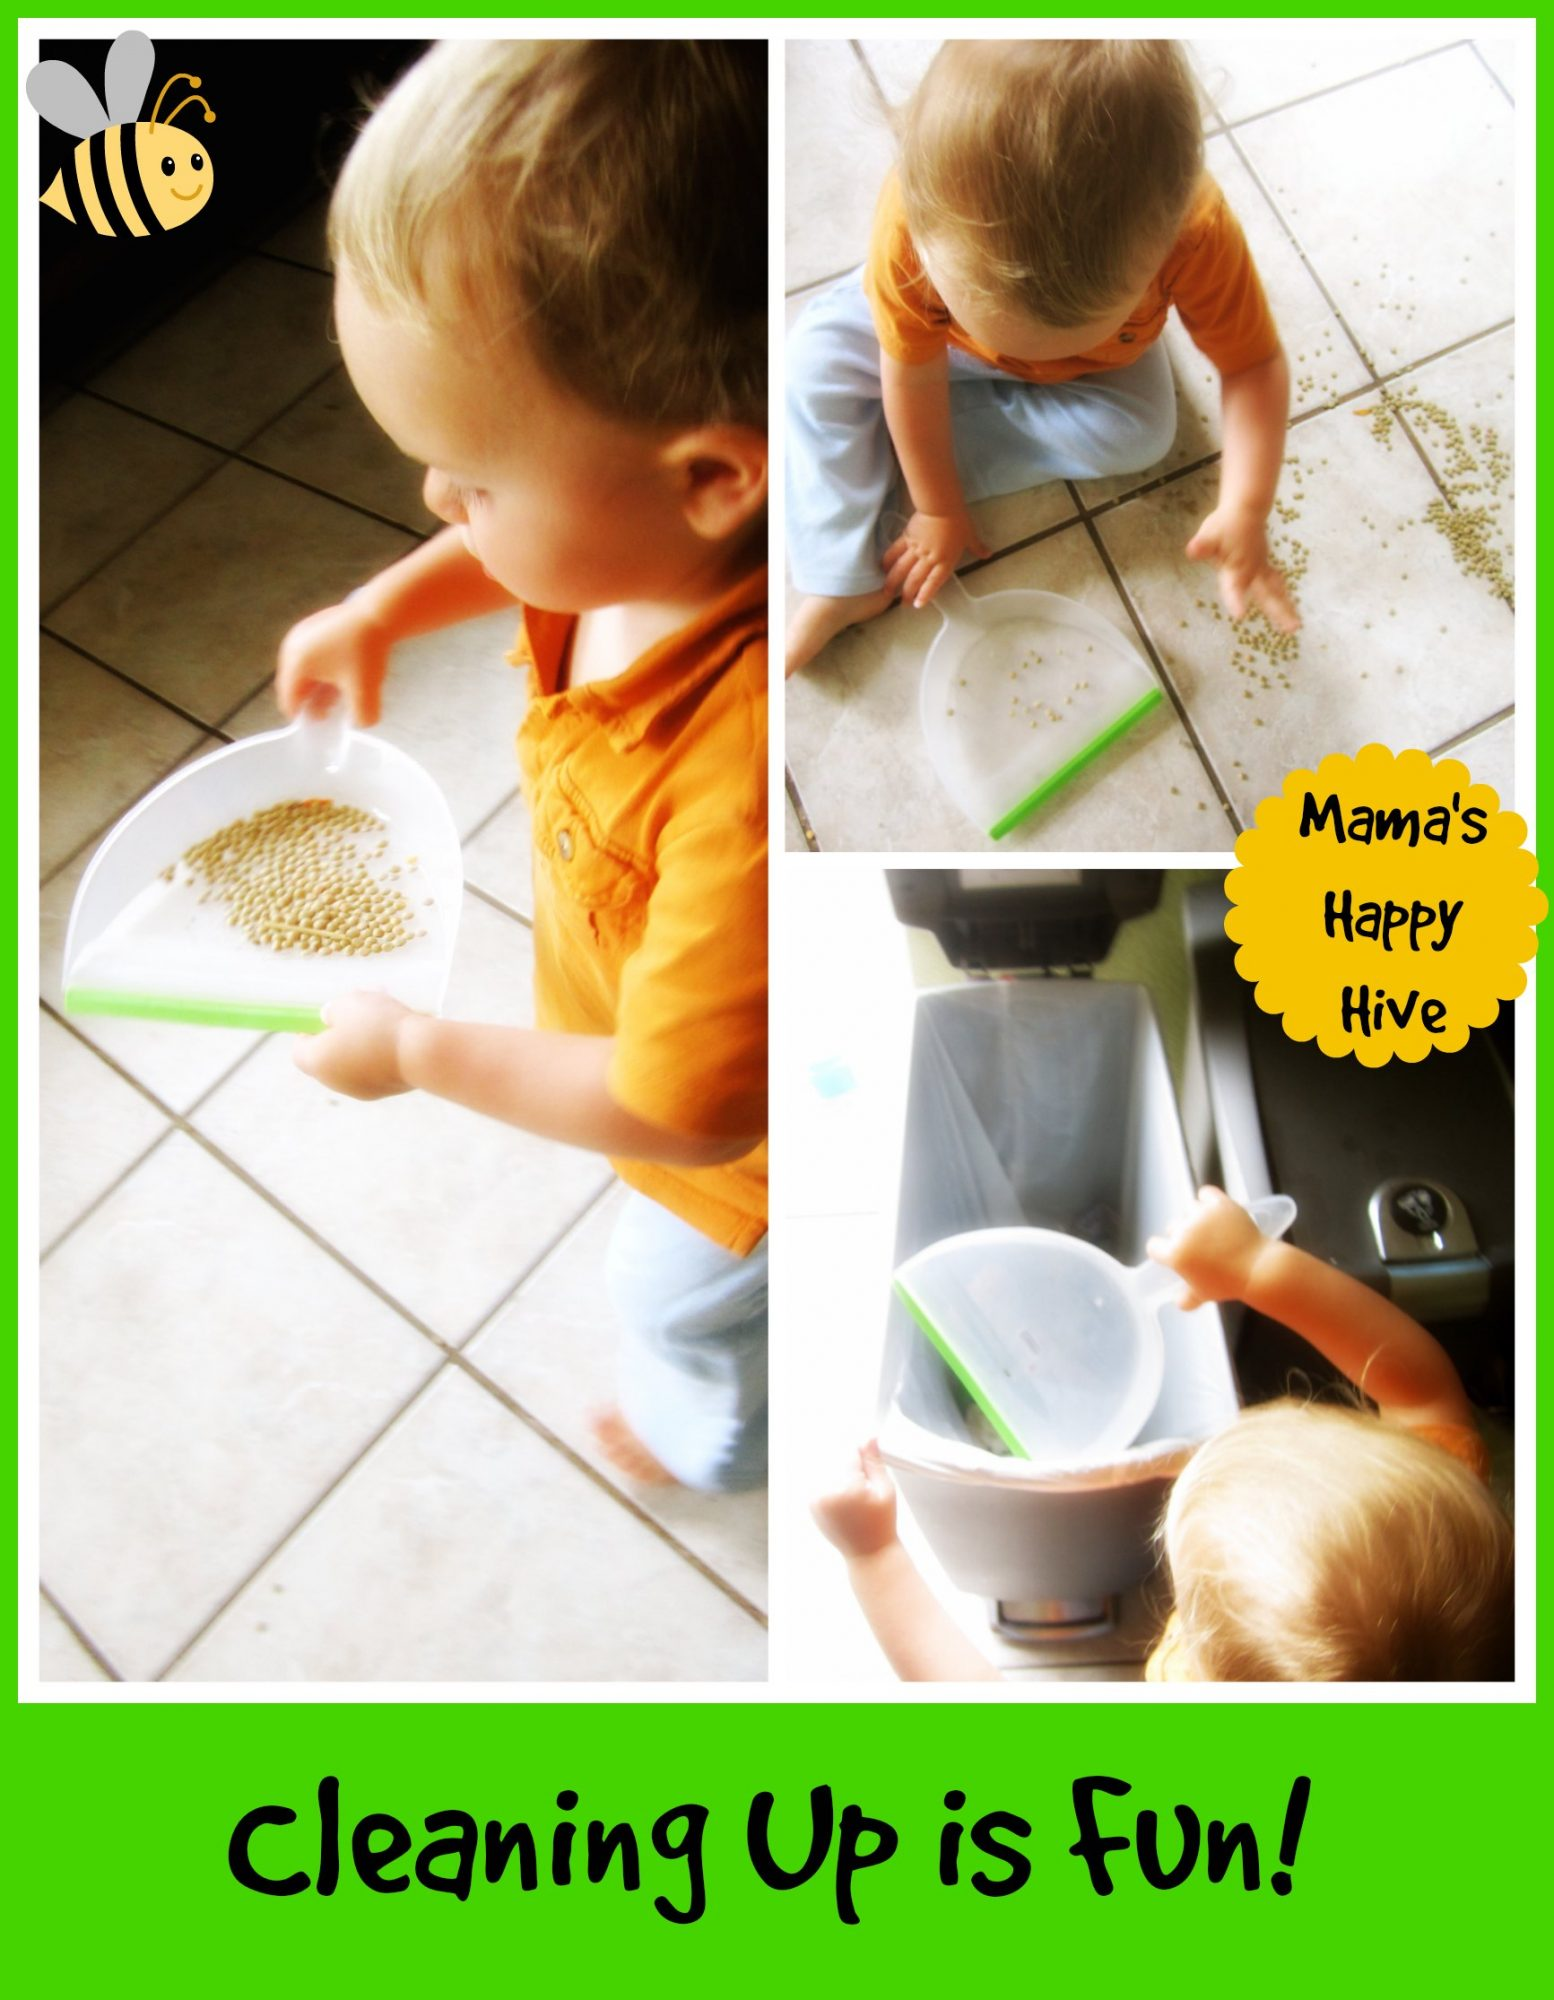 Toddler in the Kitchen - www.mamashappyhive.com